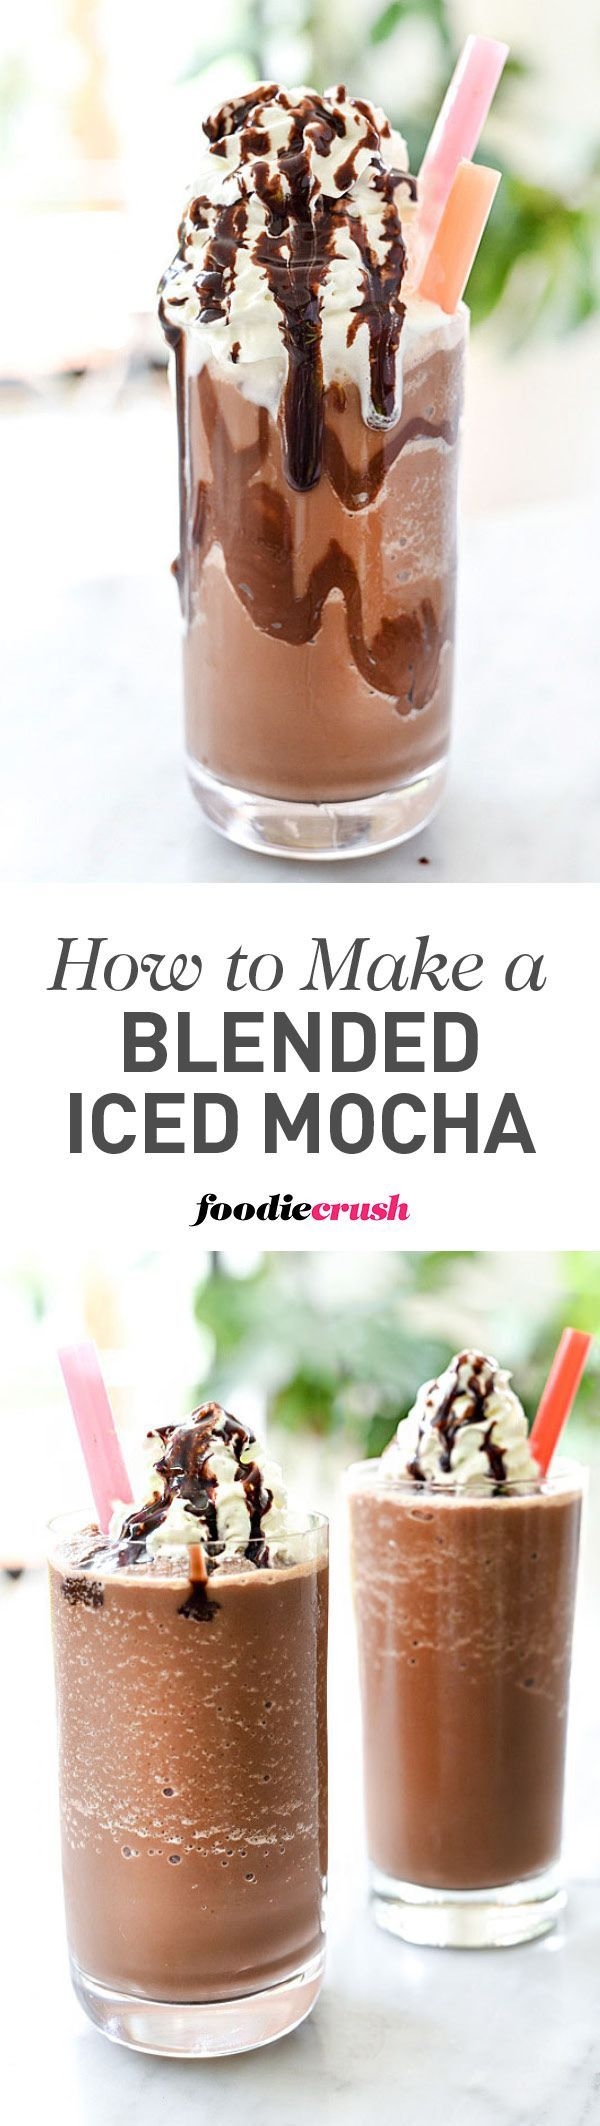 This homemade version of everyone's favorite blended coffee drink with mocha is so easy once you get the ratio right | http://foodiecrush.com #almondmilk #ad #mocha #coffee